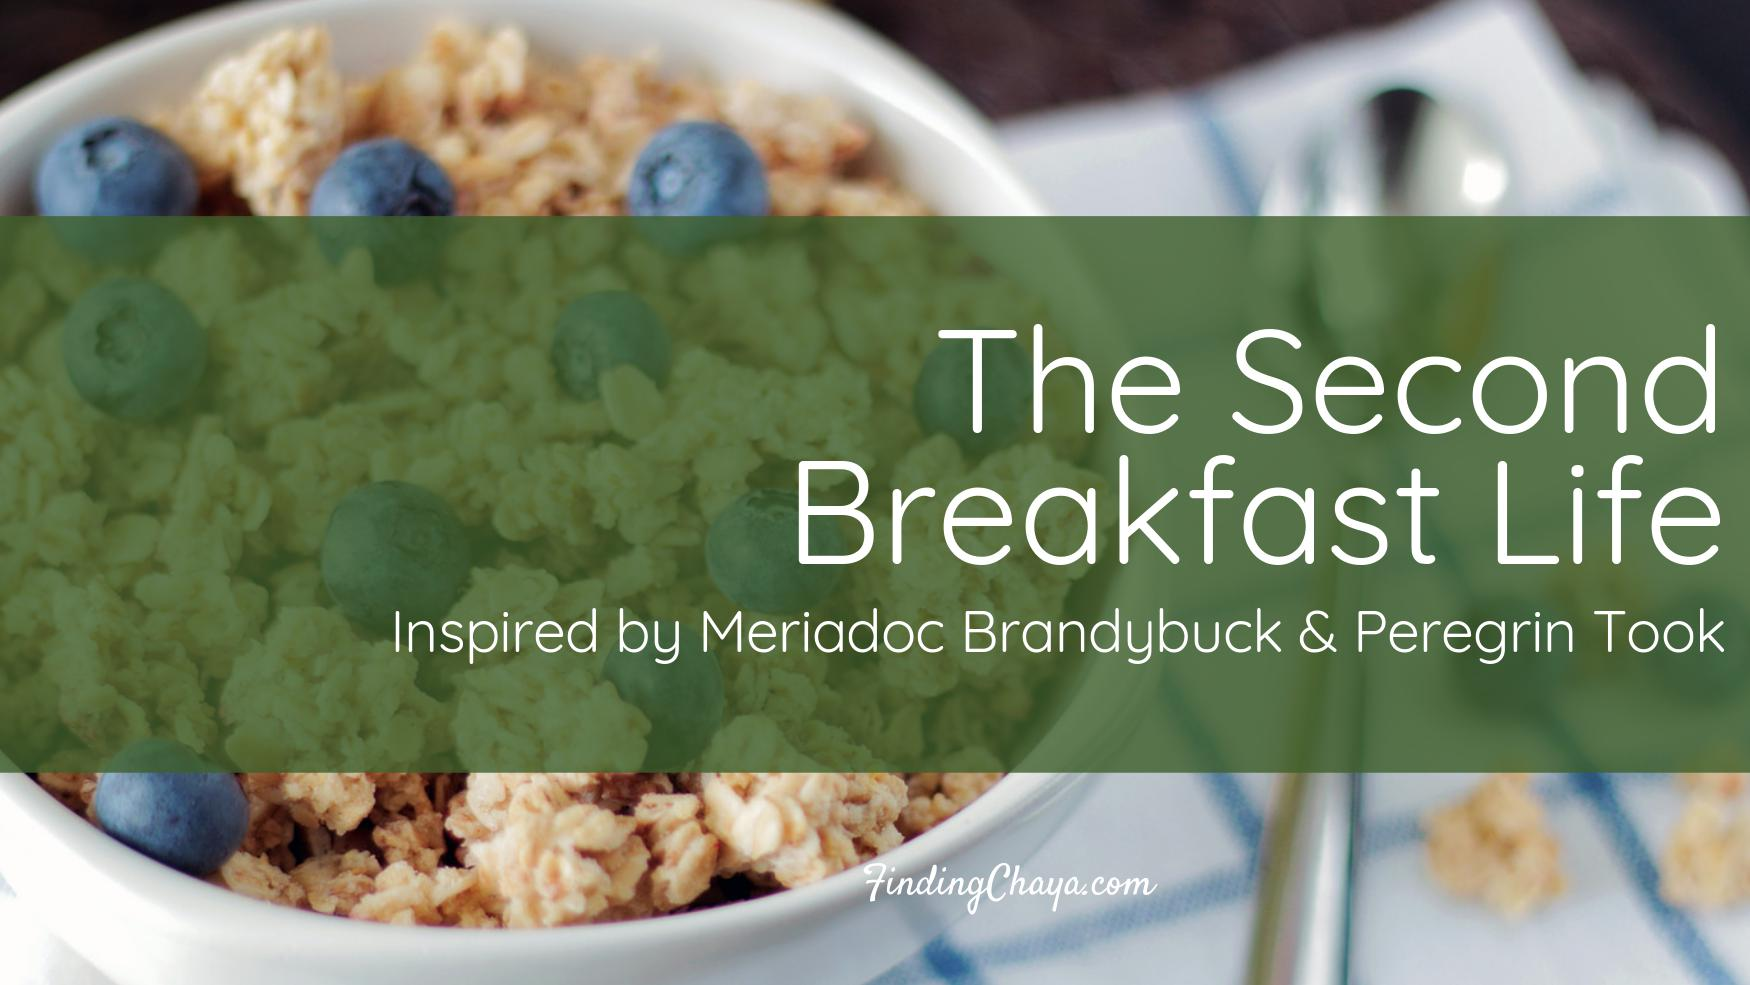 The Second Breakfast Life, as inspired by Meriadoc Brandybuck & Peregrin Took